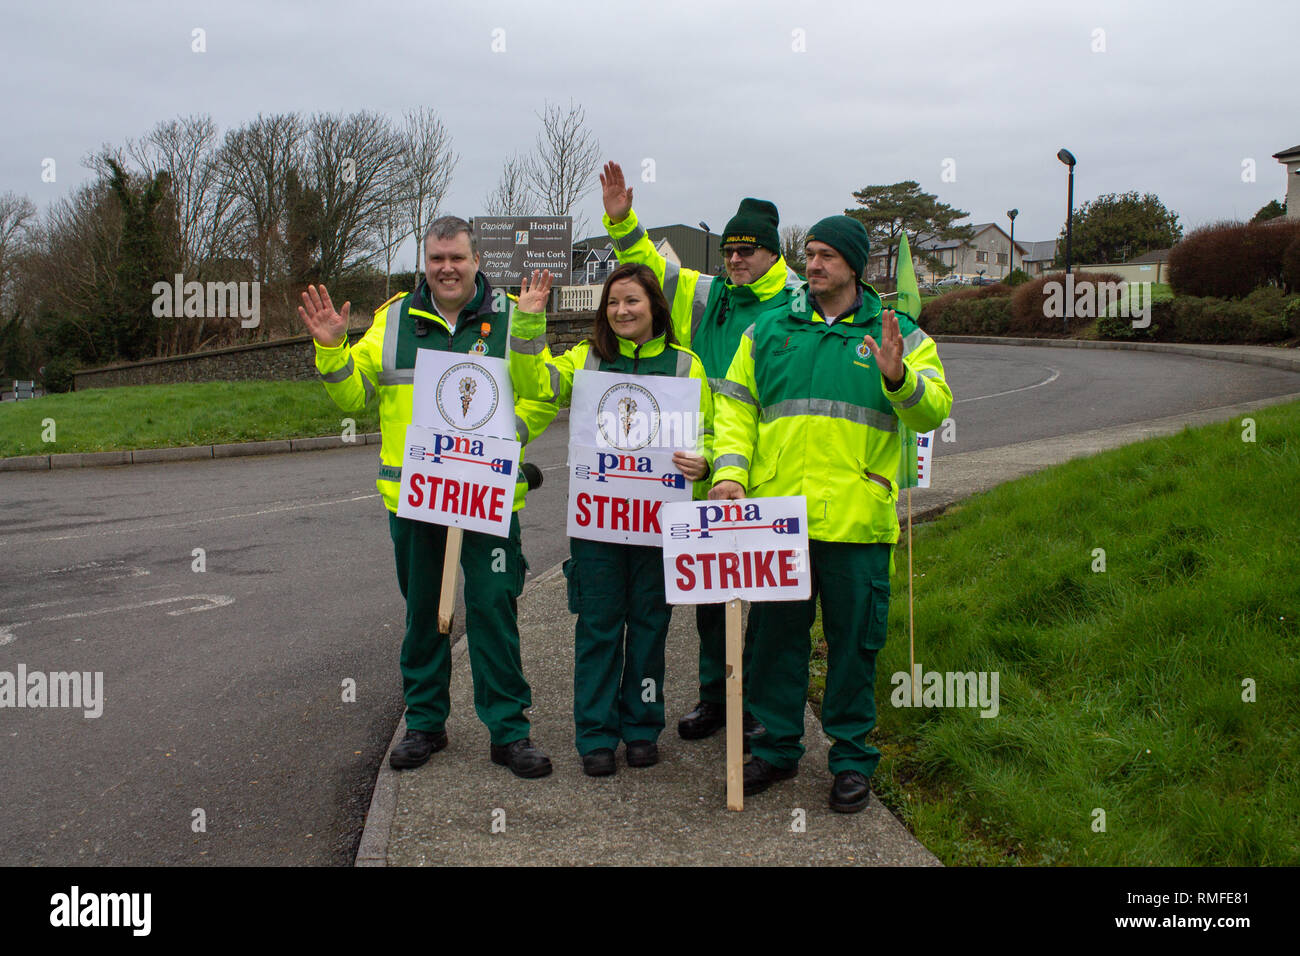 Skibbereen, West Cork, Ireland. 15th Feb 2019. PNA Strike picket line, Skibbereen, West Cork, Ireland, February 12th 2019 Ambulance personnel belonging to the Psychiatric Nurses Association (PNA) were out manning the picket line outside Skibbereen Community Hospital today as part of their nationwide industrial action. Credit: aphperspective/Alamy Live News - Stock Image